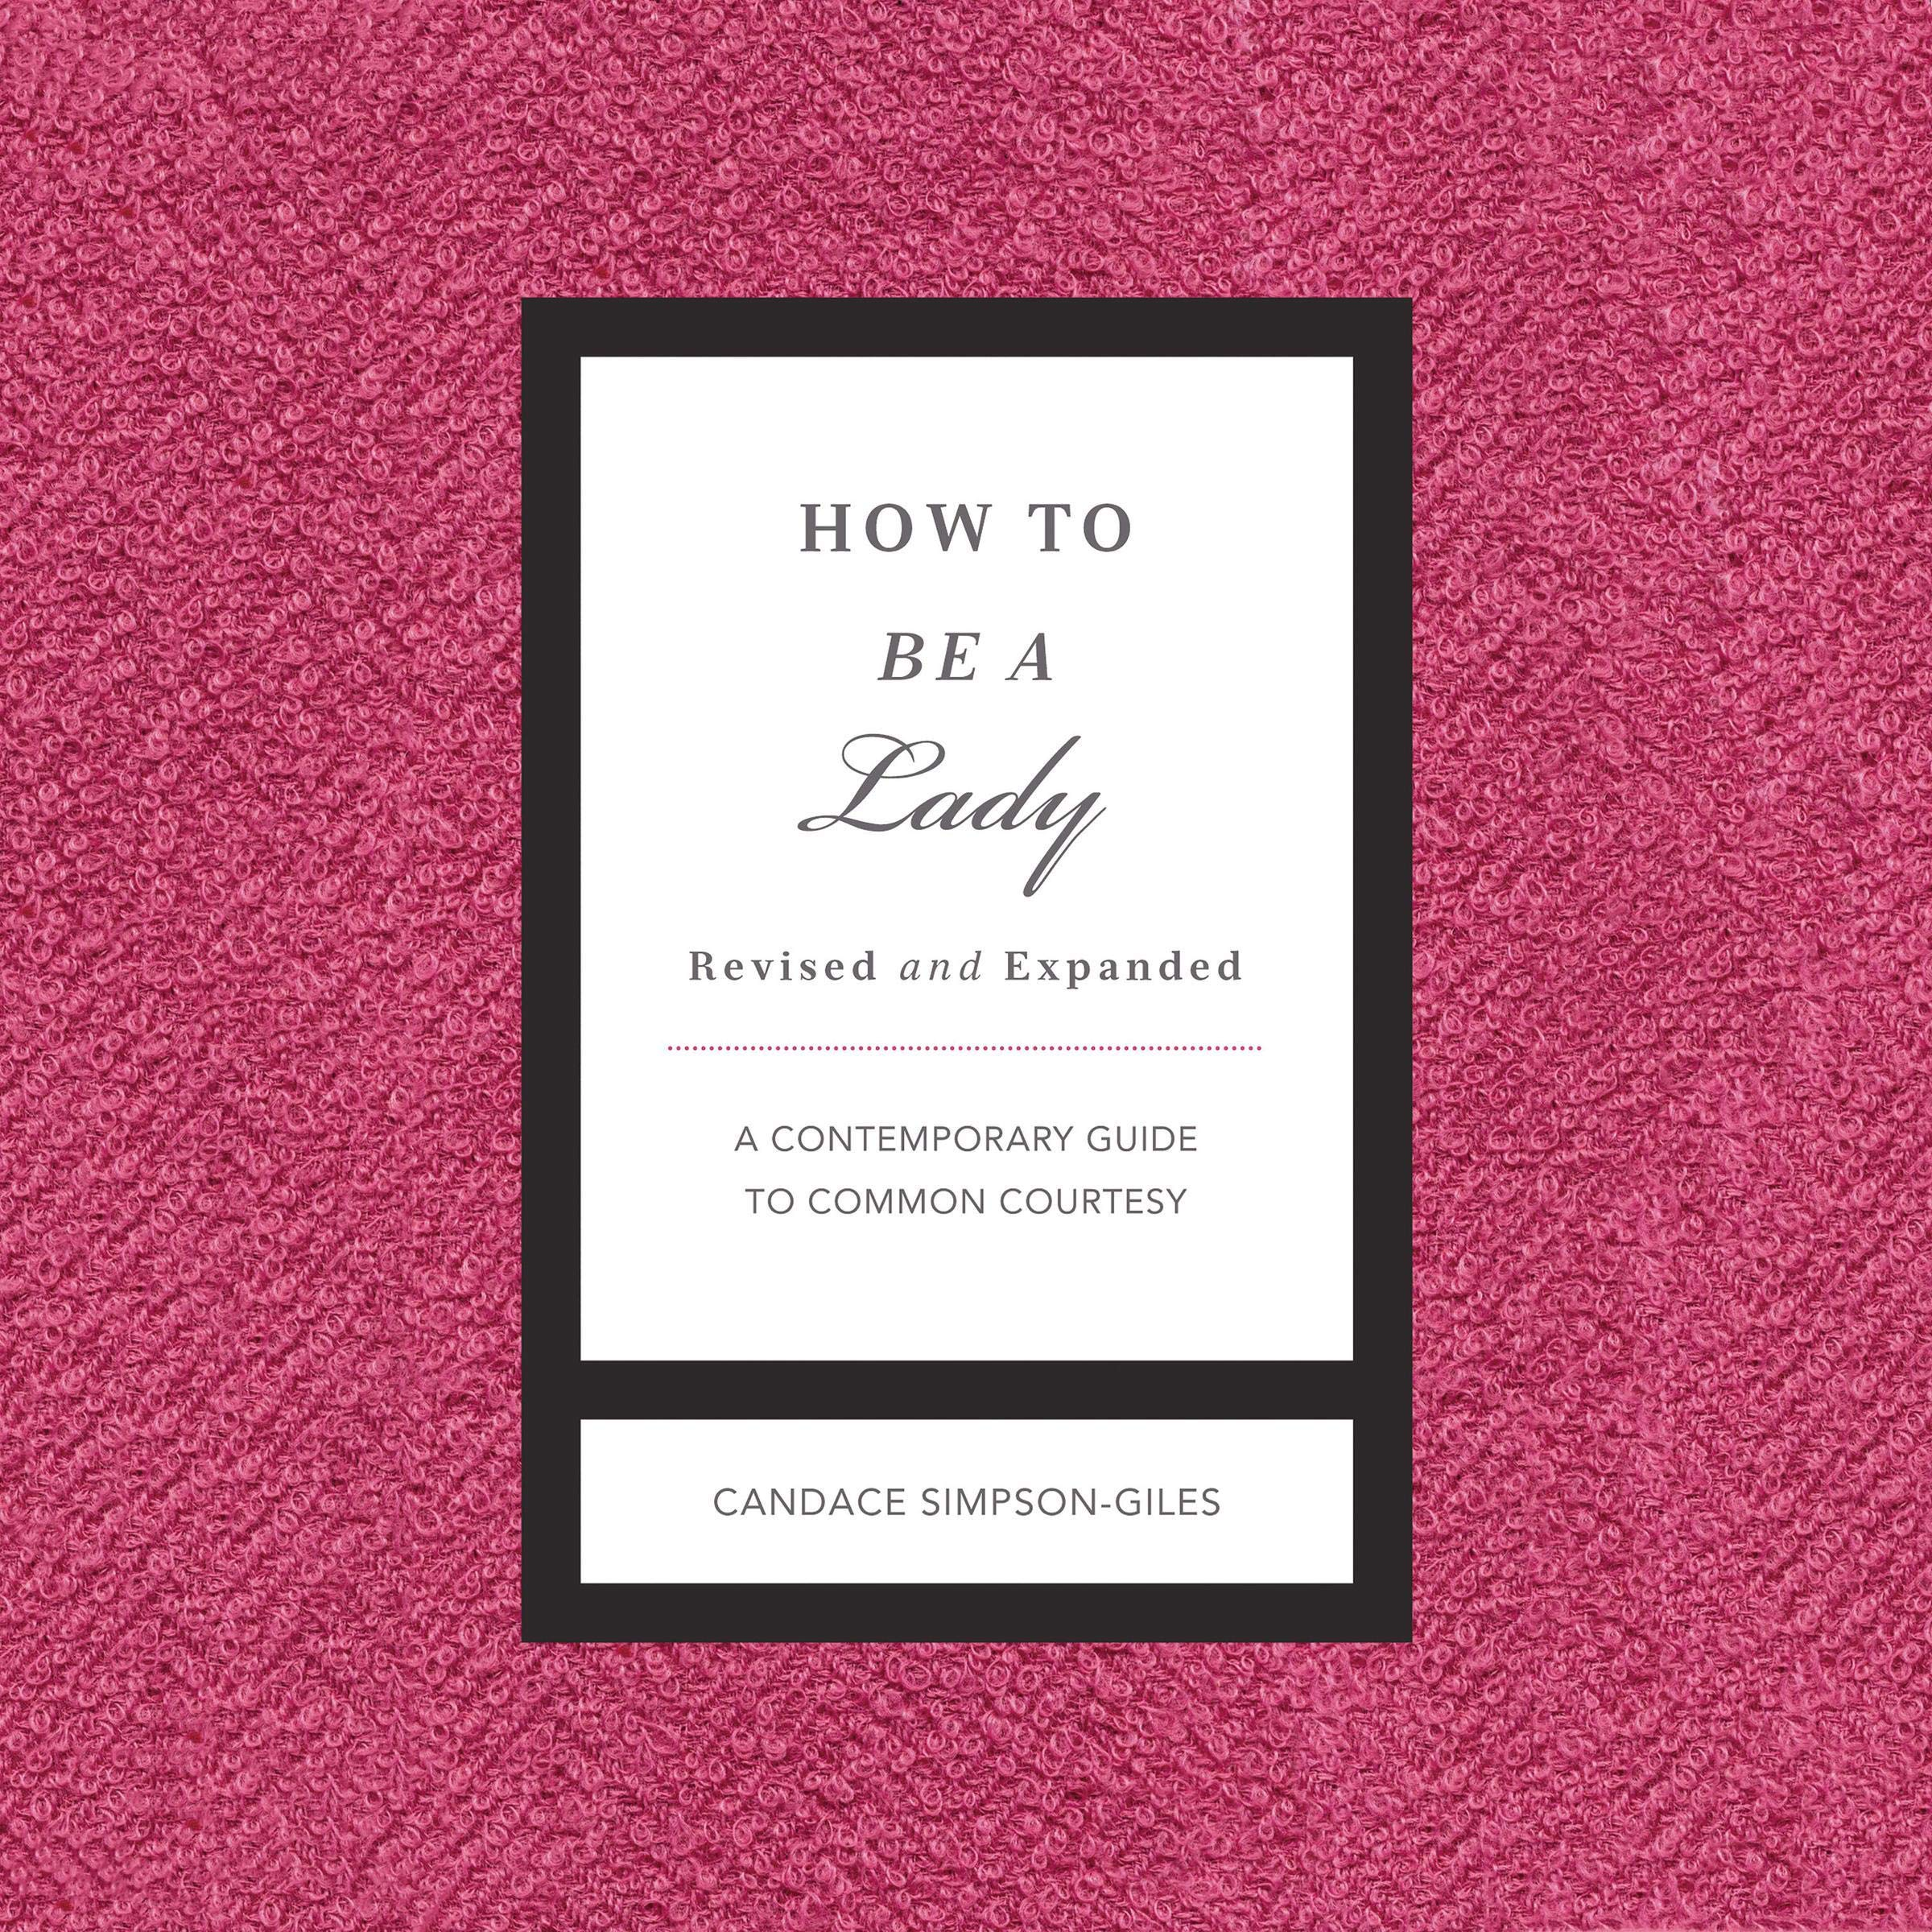 How to Be a Lady Revised and Expanded: A Contemporary Guide to Common Courtesy